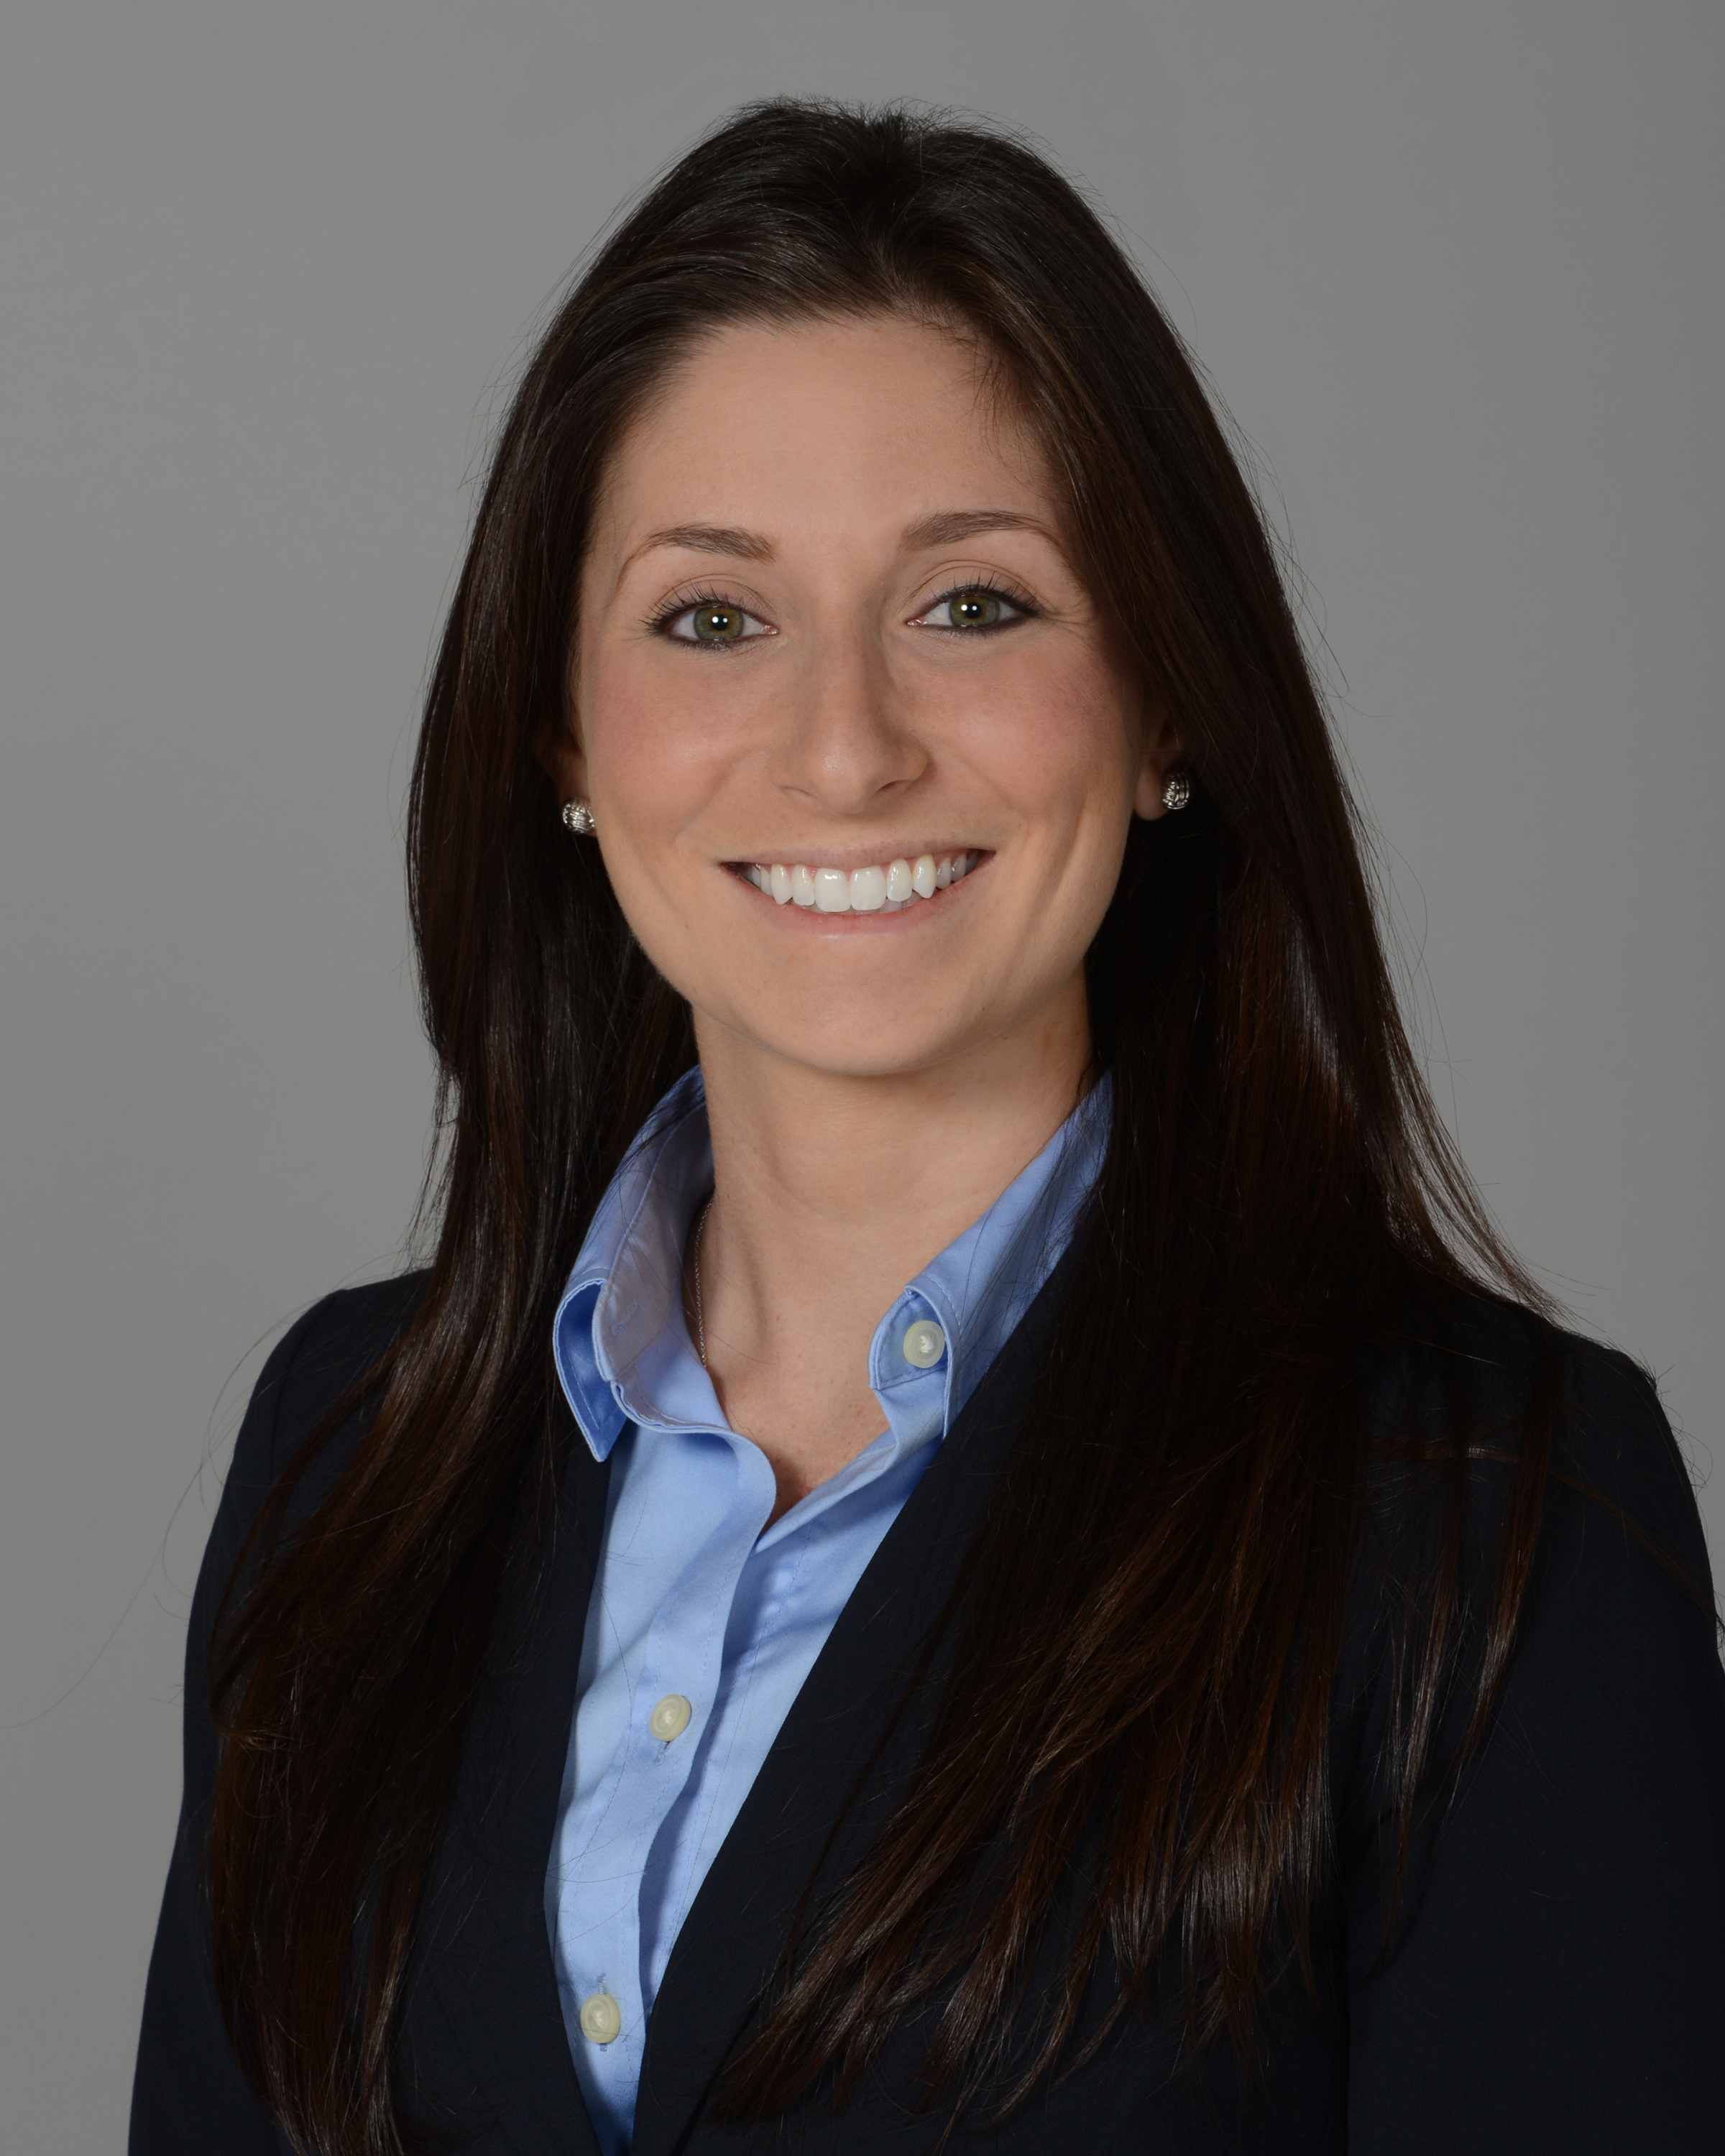 Brodie Amp Friedman P A Welcomes New Associate